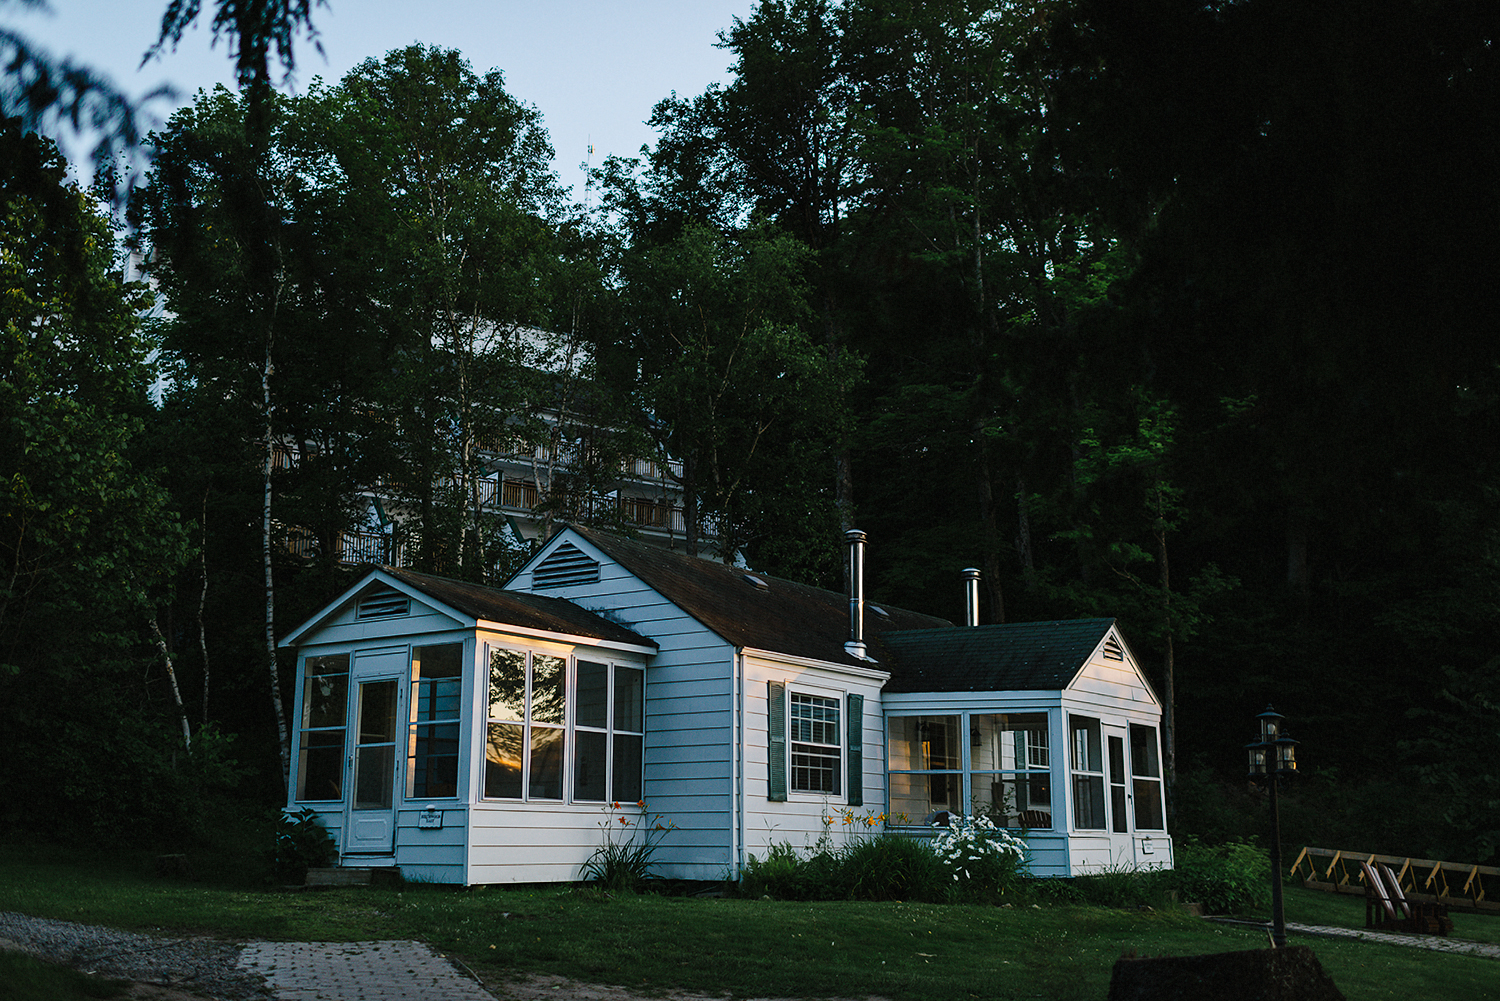 Muskoka-Cottage-Wedding-Photography-Photographer_Photojournalistic-Documentary-Wedding-Photography_Lakeside-Ceremony-Sunset-Light-on-Cabin-window.jpg